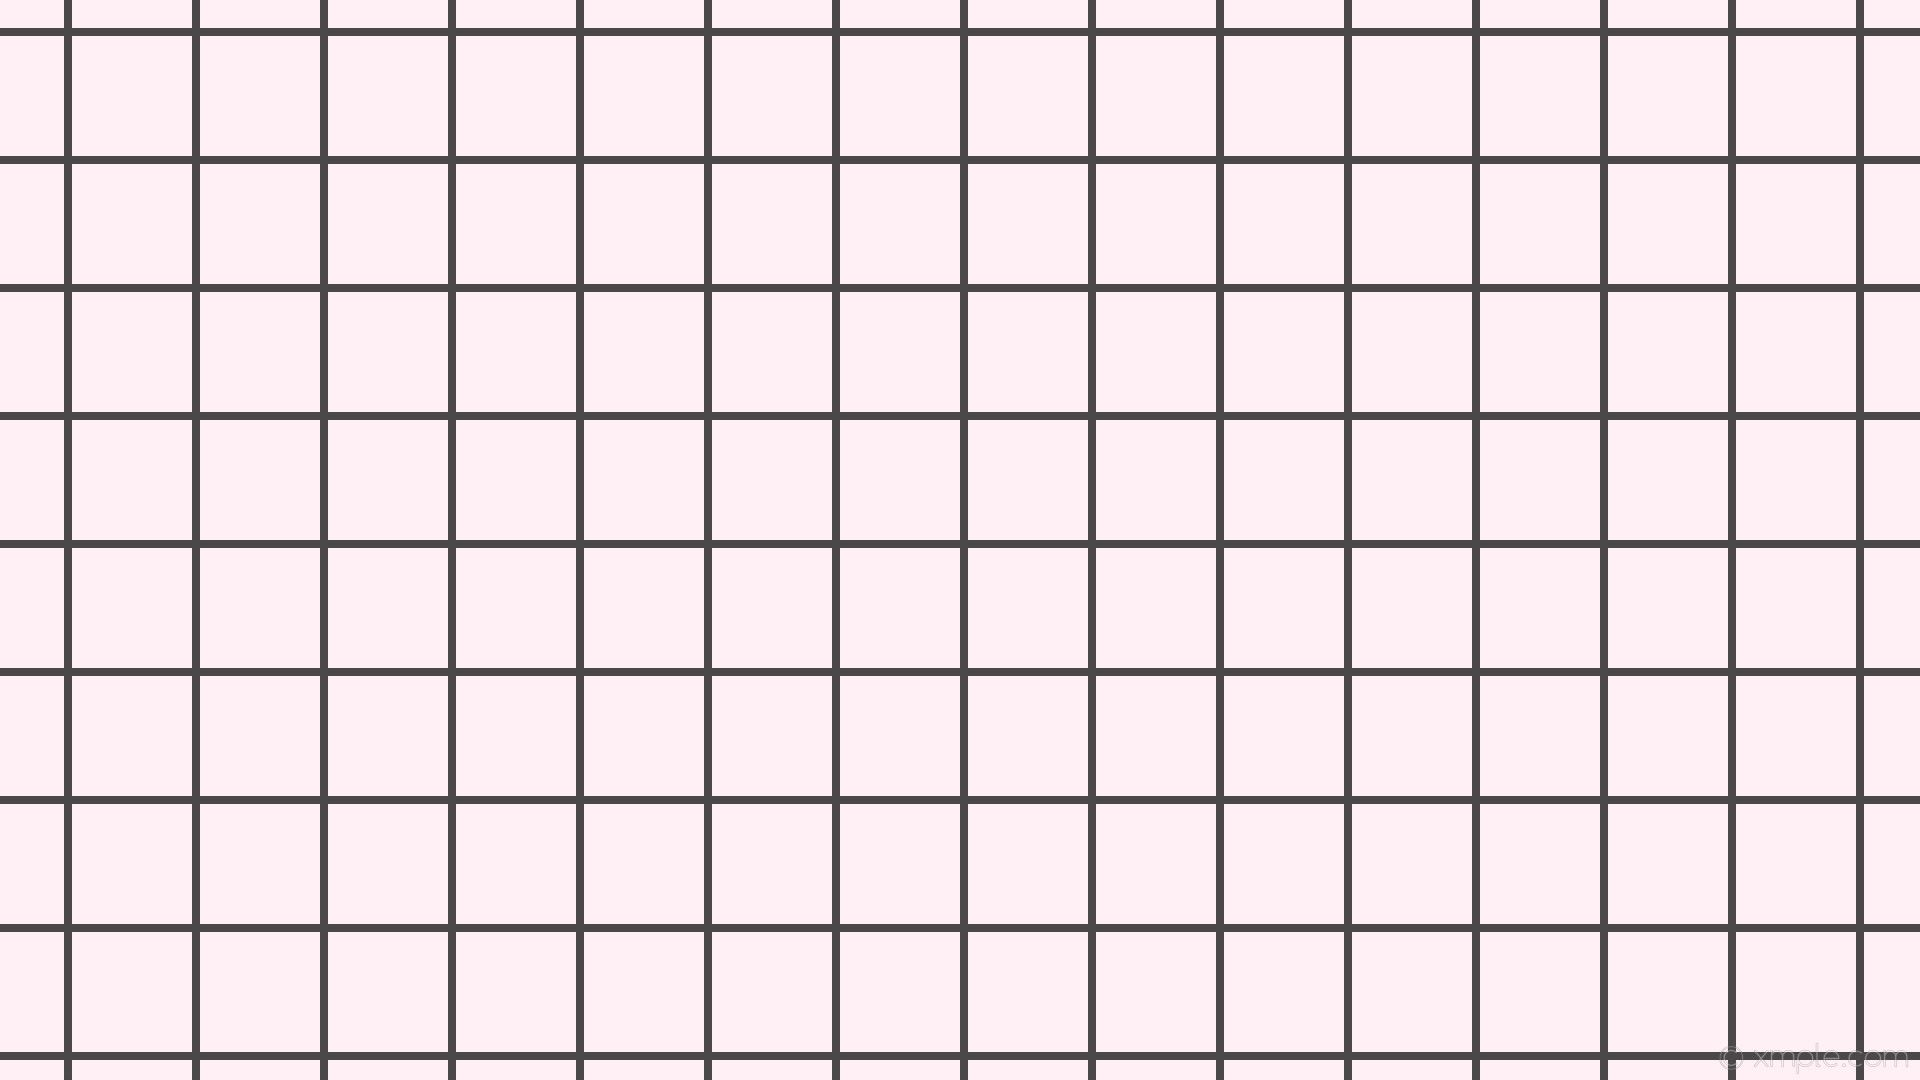 Black And White Aesthetic Grid Wallpapers Top Free Black